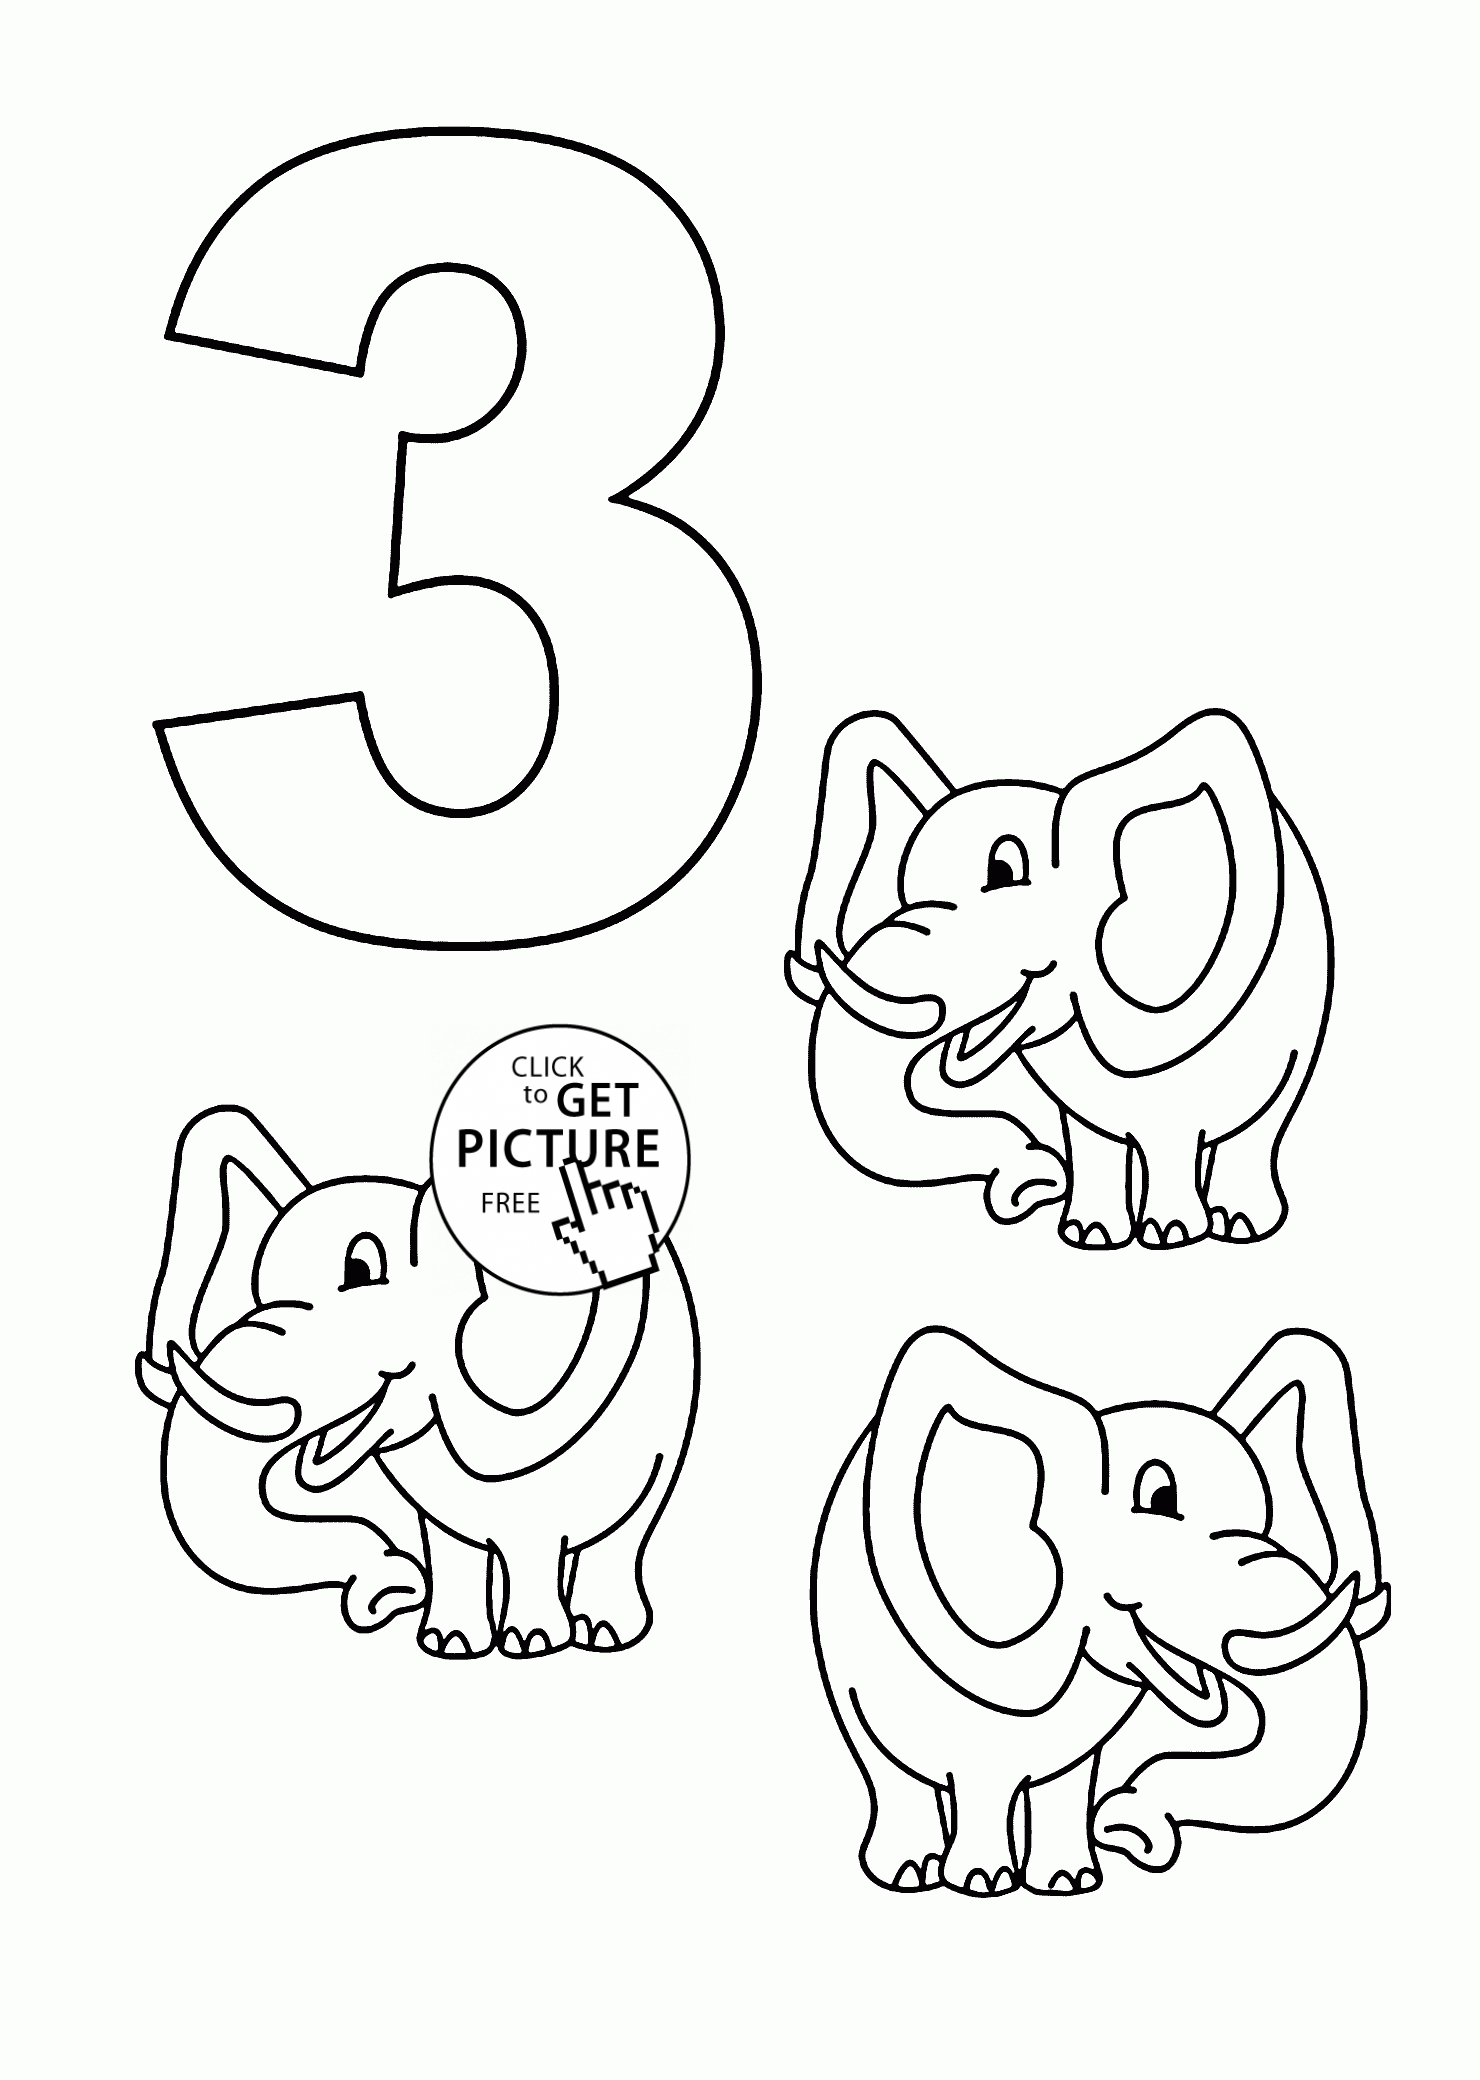 number 3 coloring page - number 3 coloring pages for kids counting sheets printables free